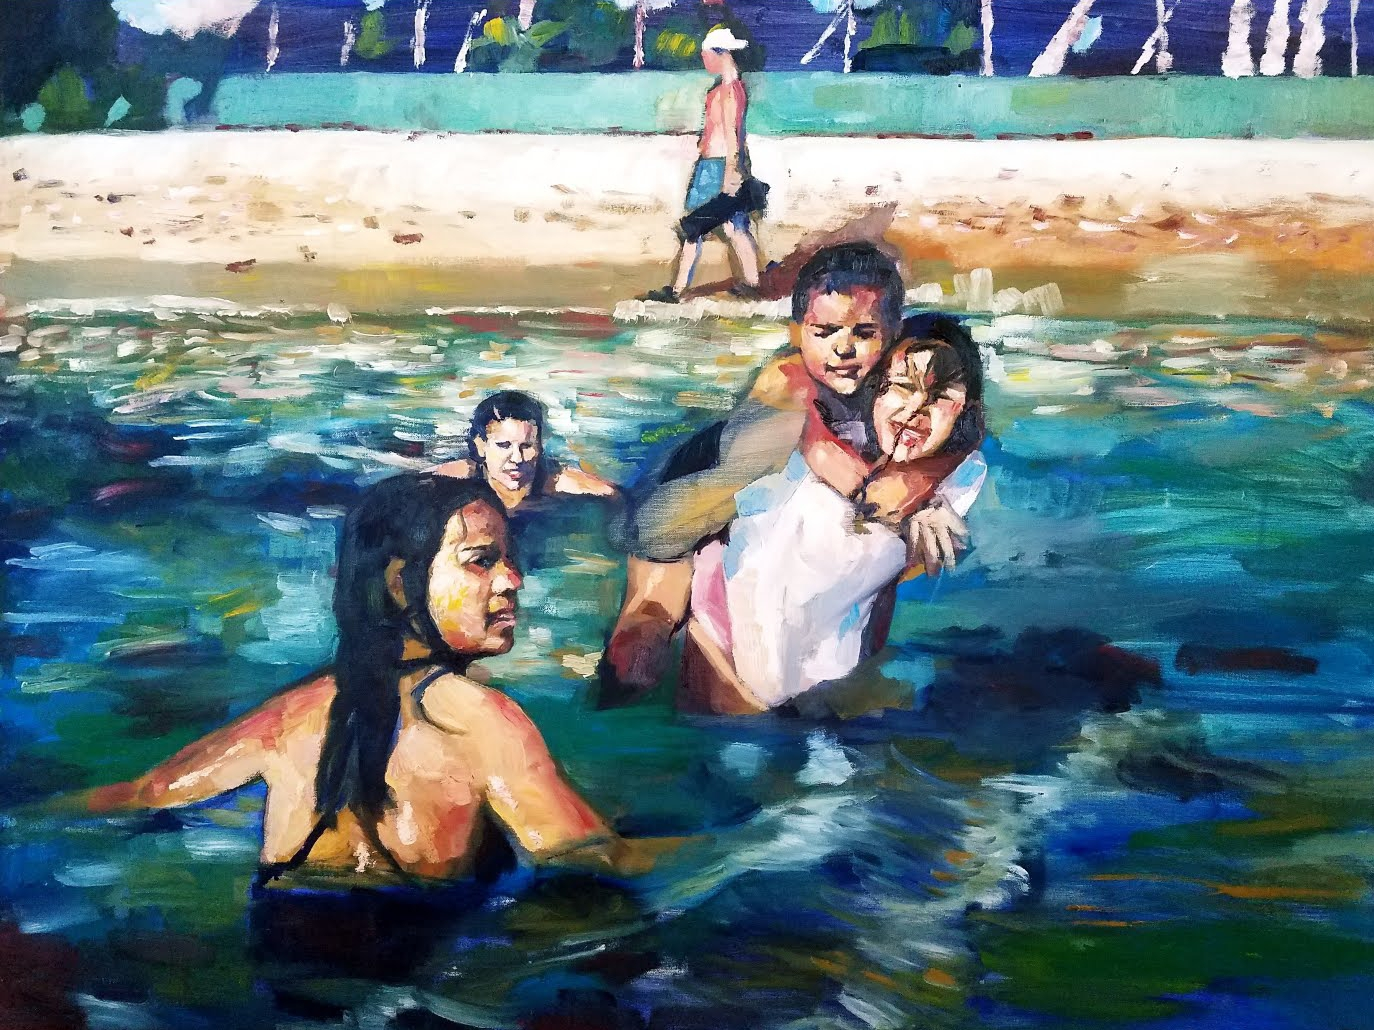 Blue or Bathers